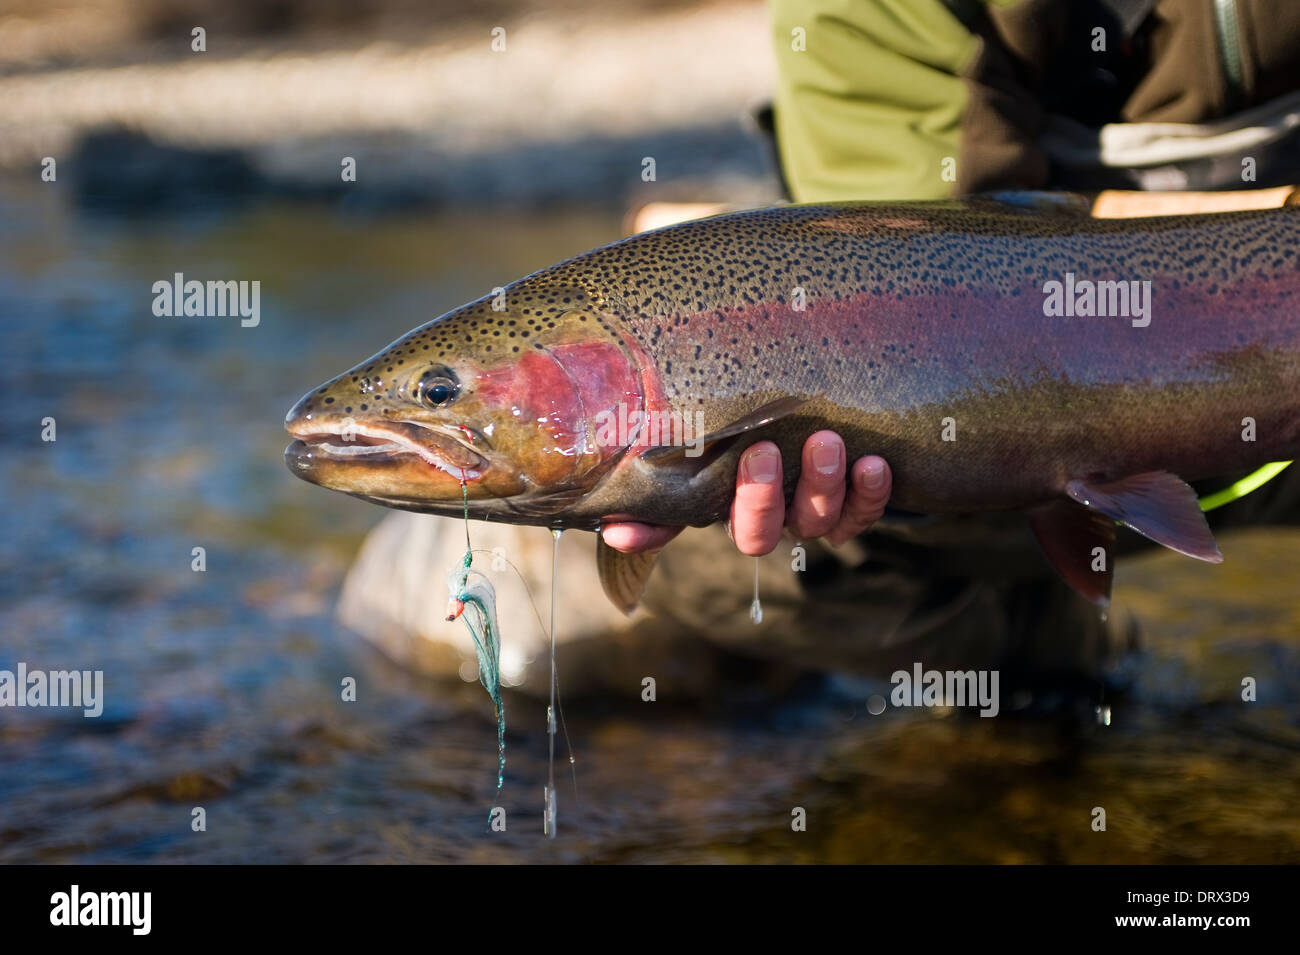 Angler holding a large steelhead caught spey casting in a river in Northern Ontario, Canada - Stock Image